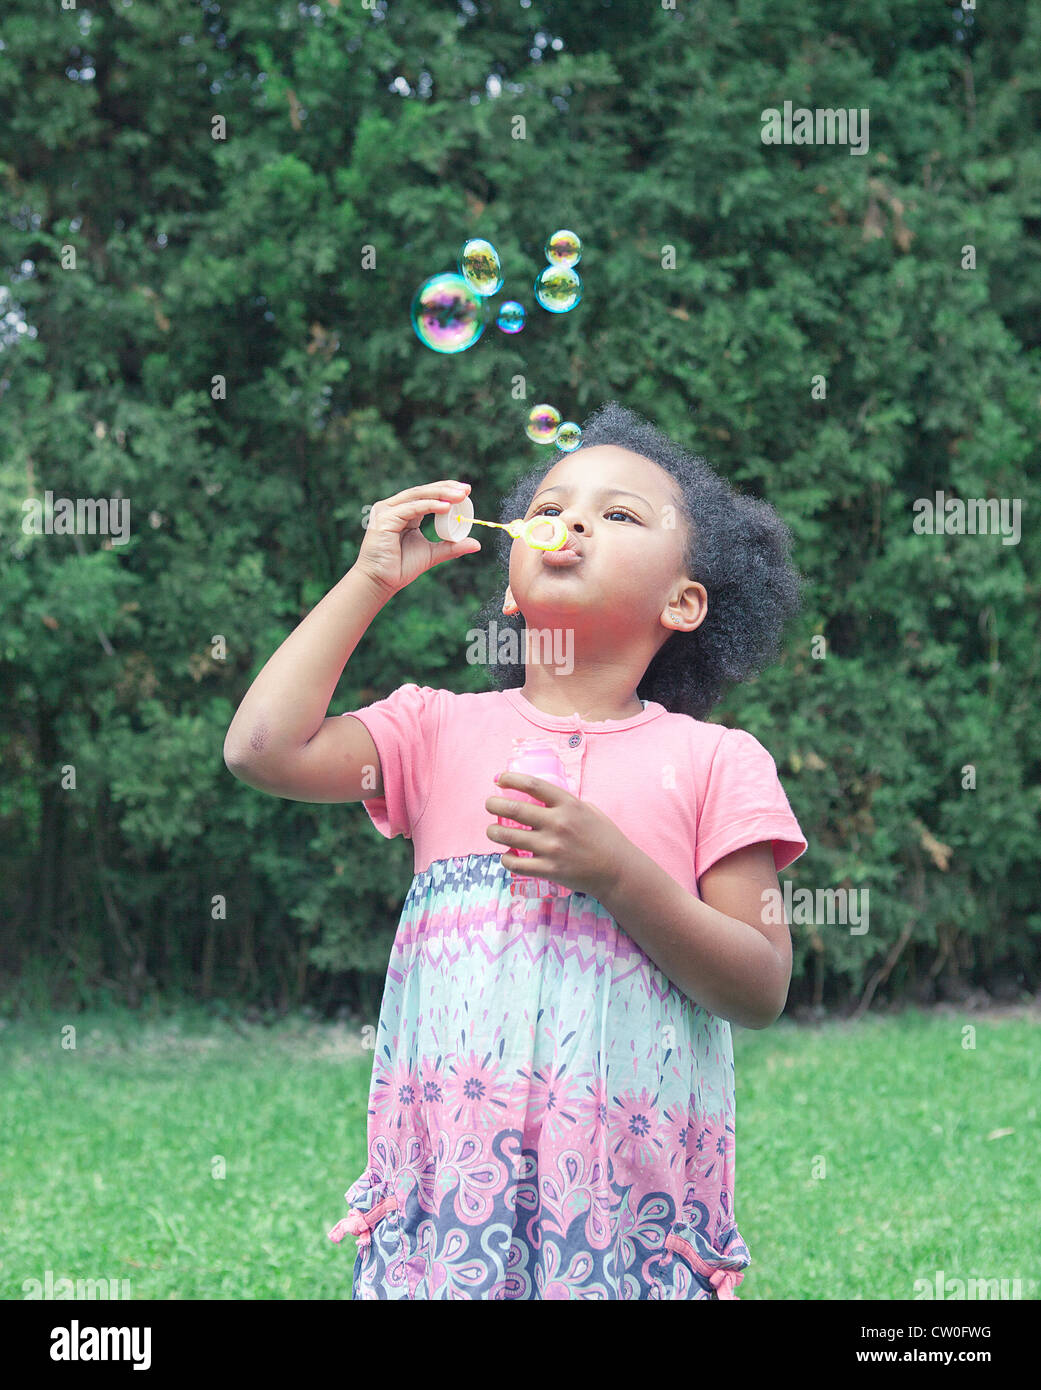 Girl blowing bubbles outdoors - Stock Image